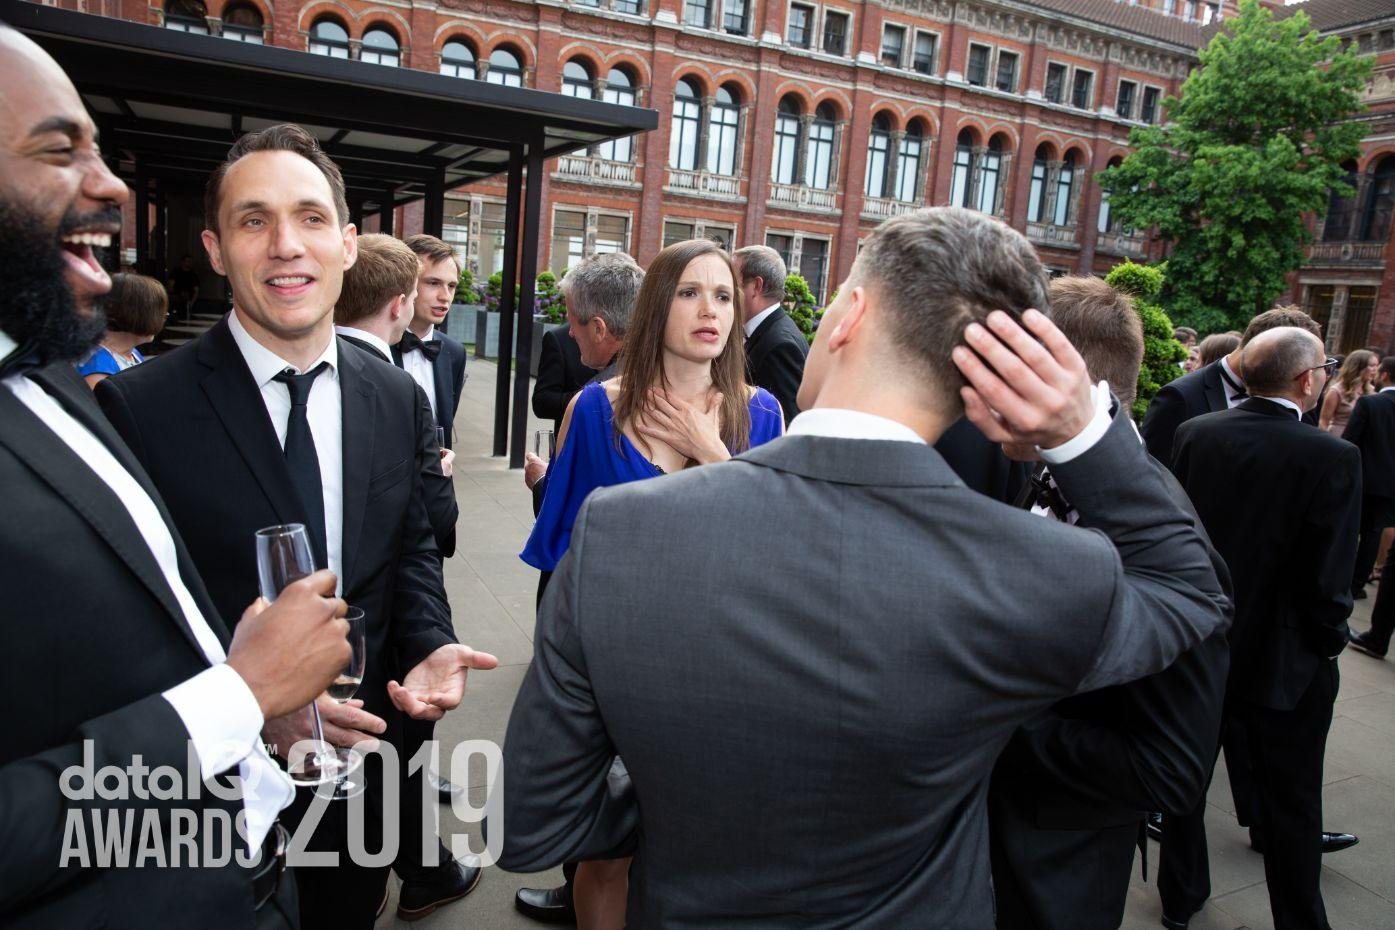 Awards 2019 Image 115